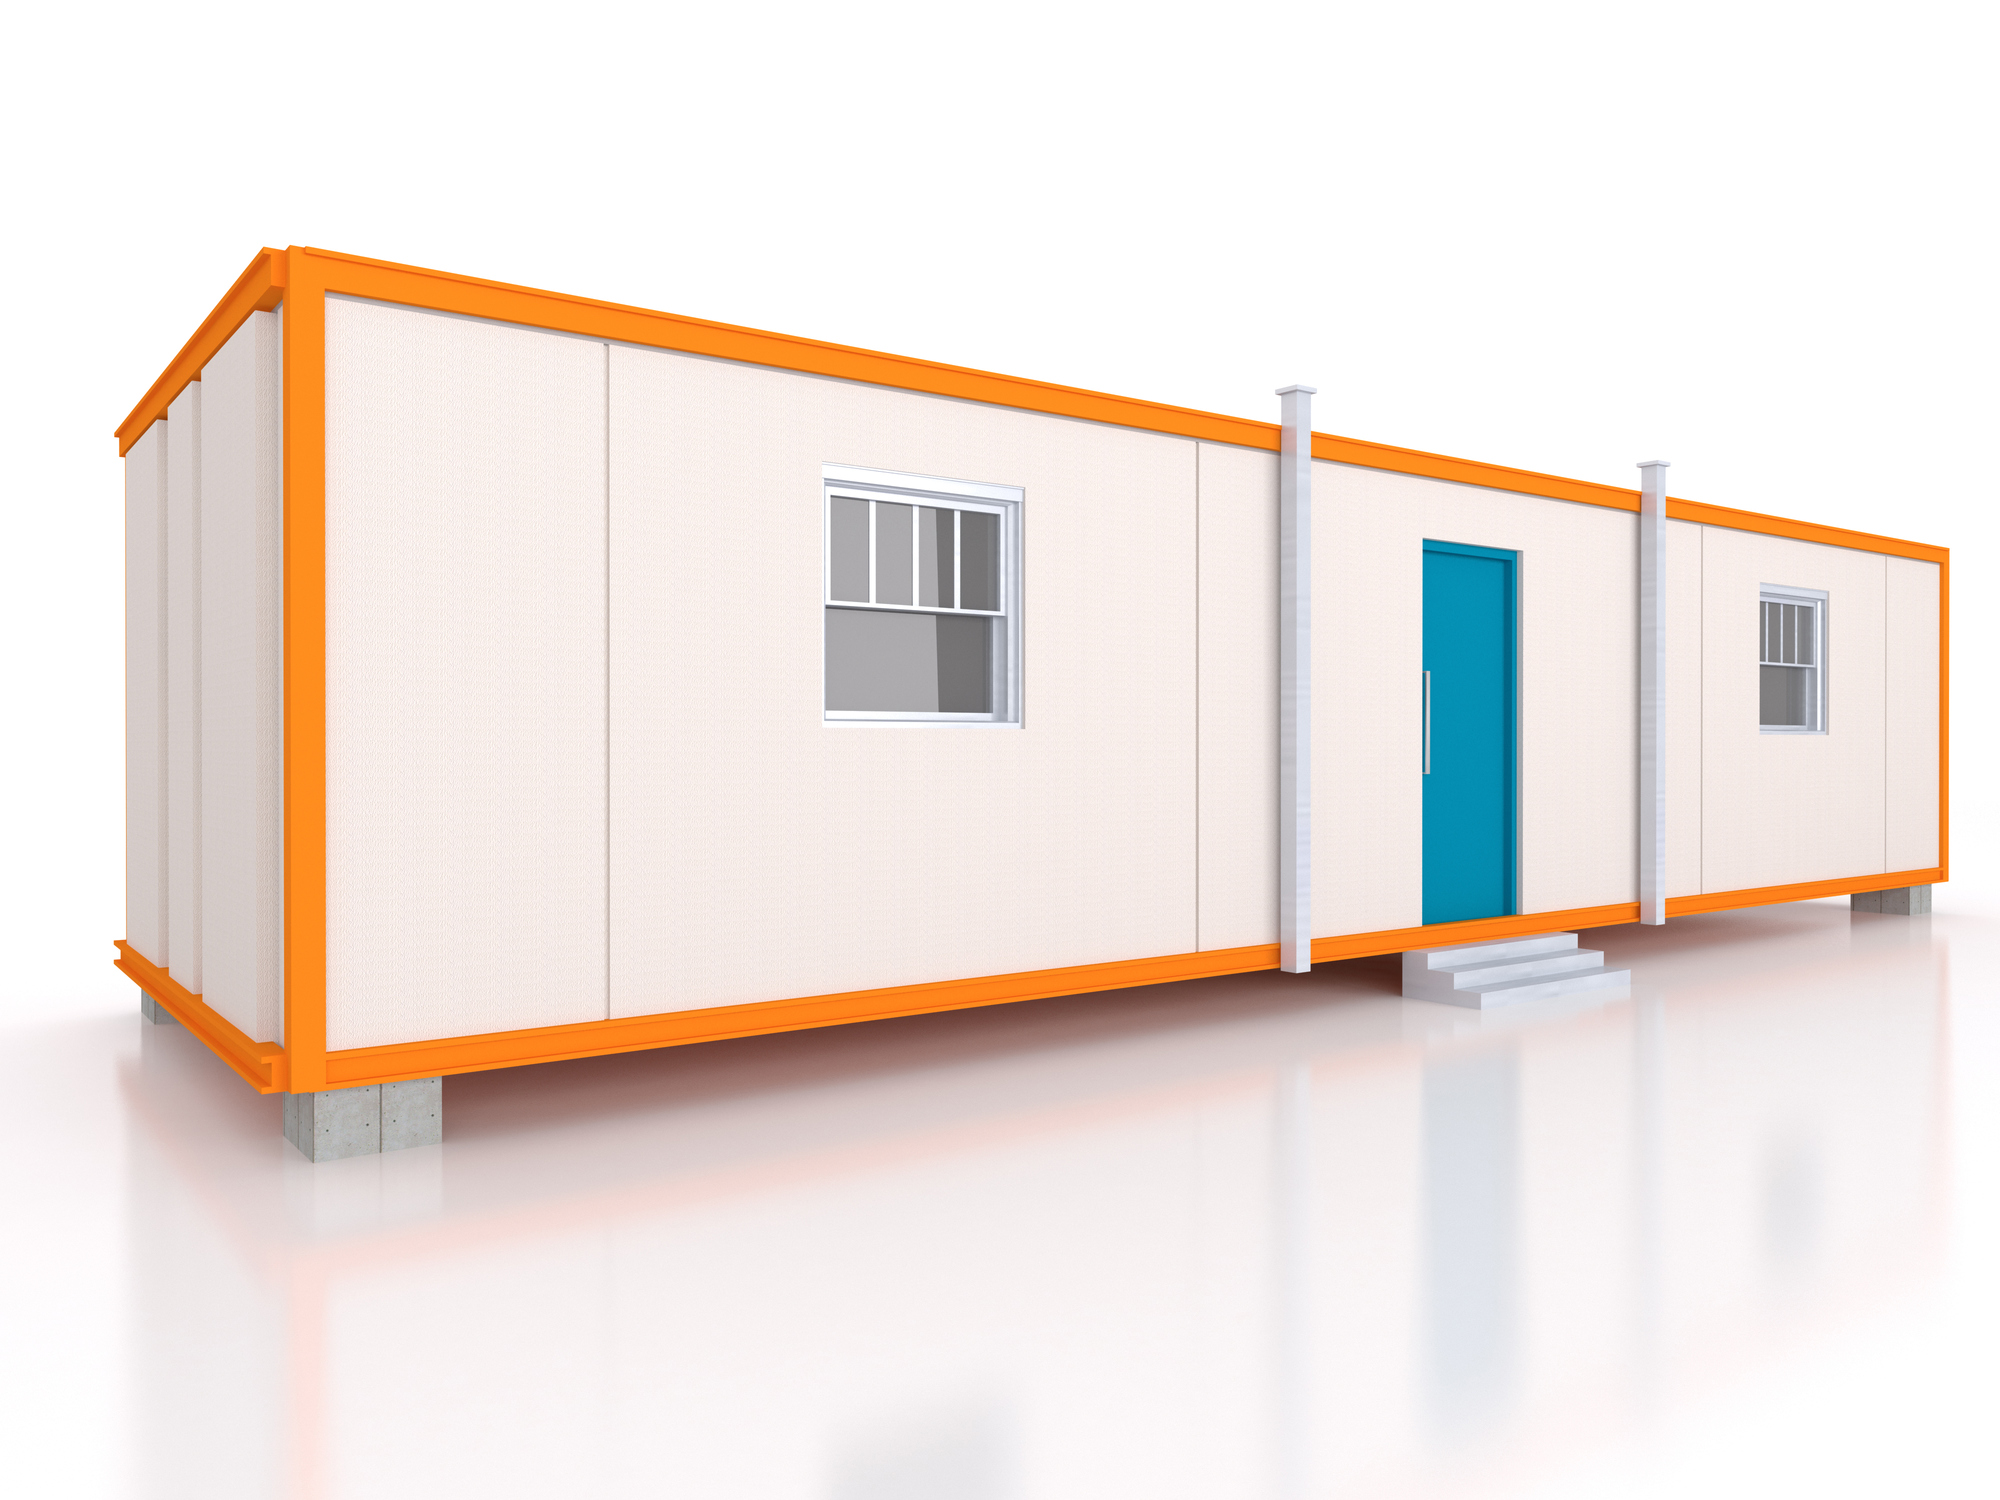 Considering A Modular Classroom Addition? Keep These Dos And Don'ts In Mind